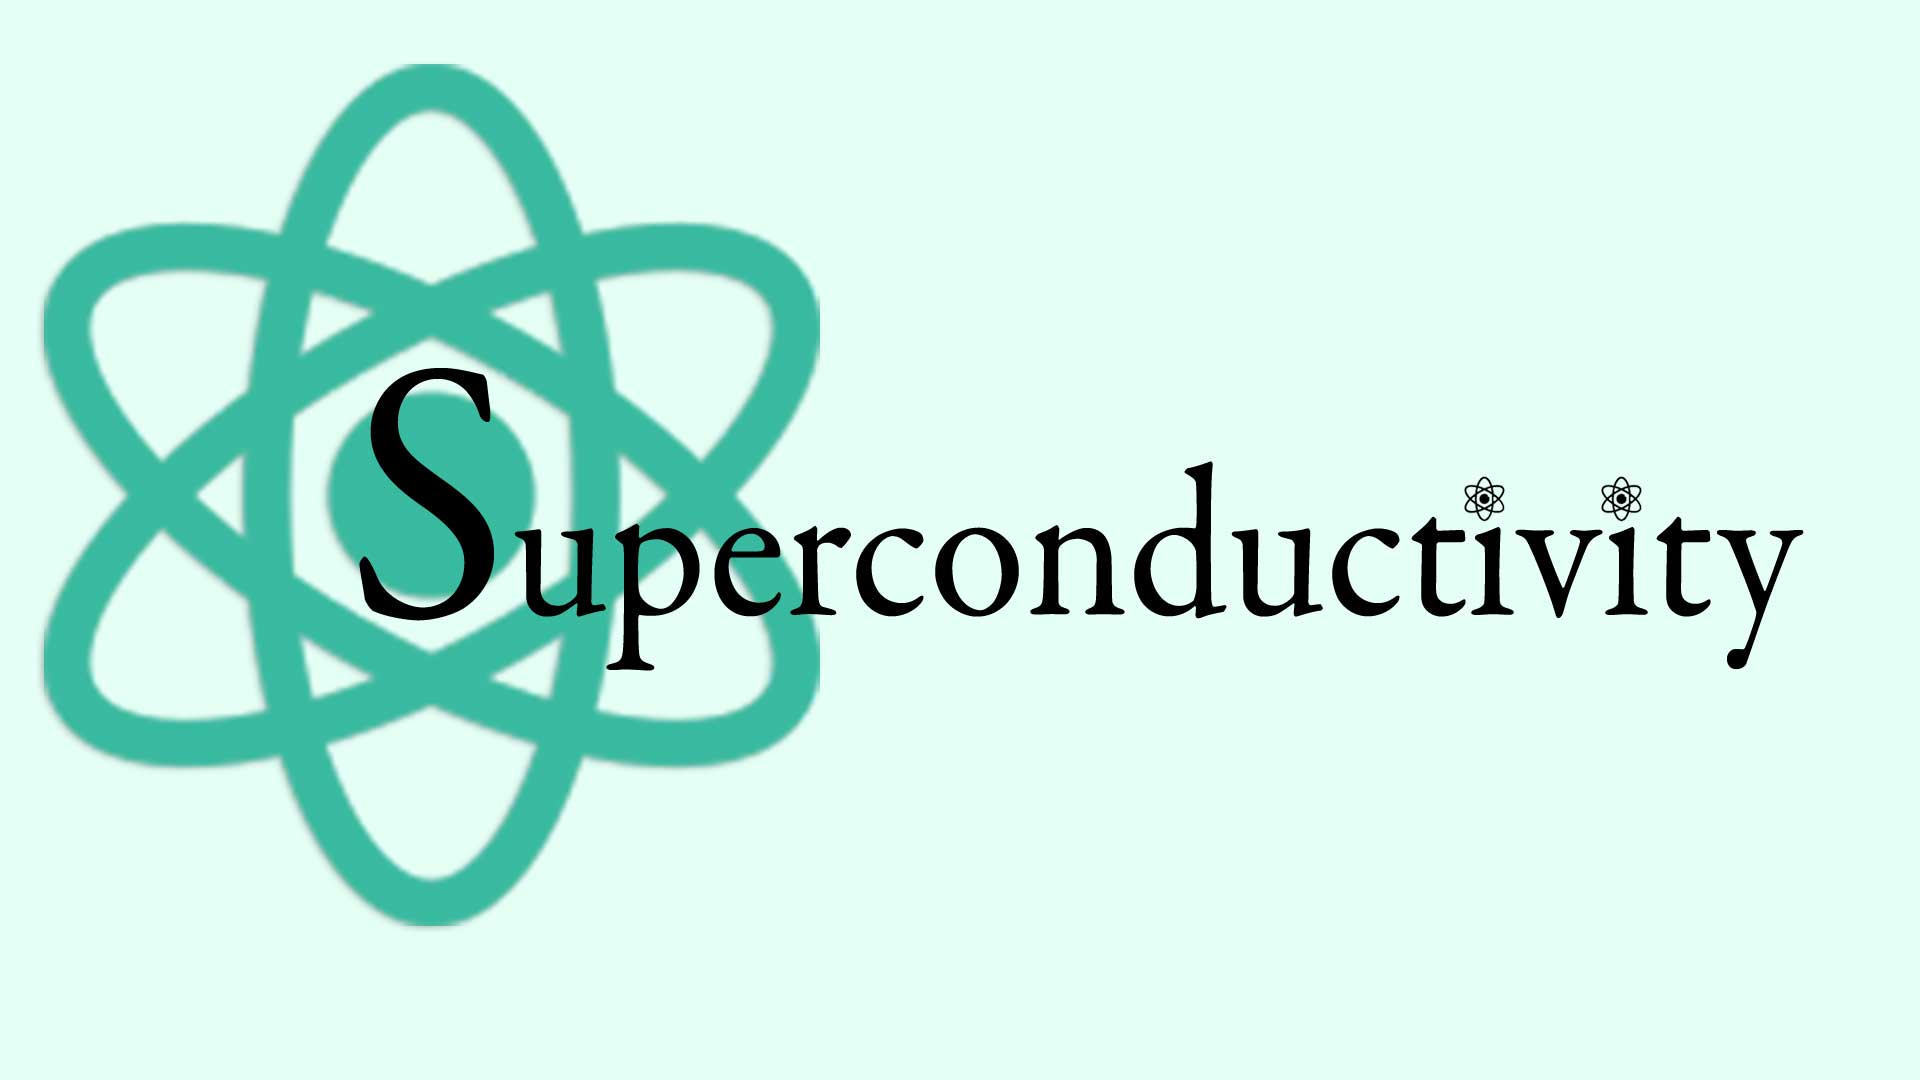 Superconductivity Graphic with Atom